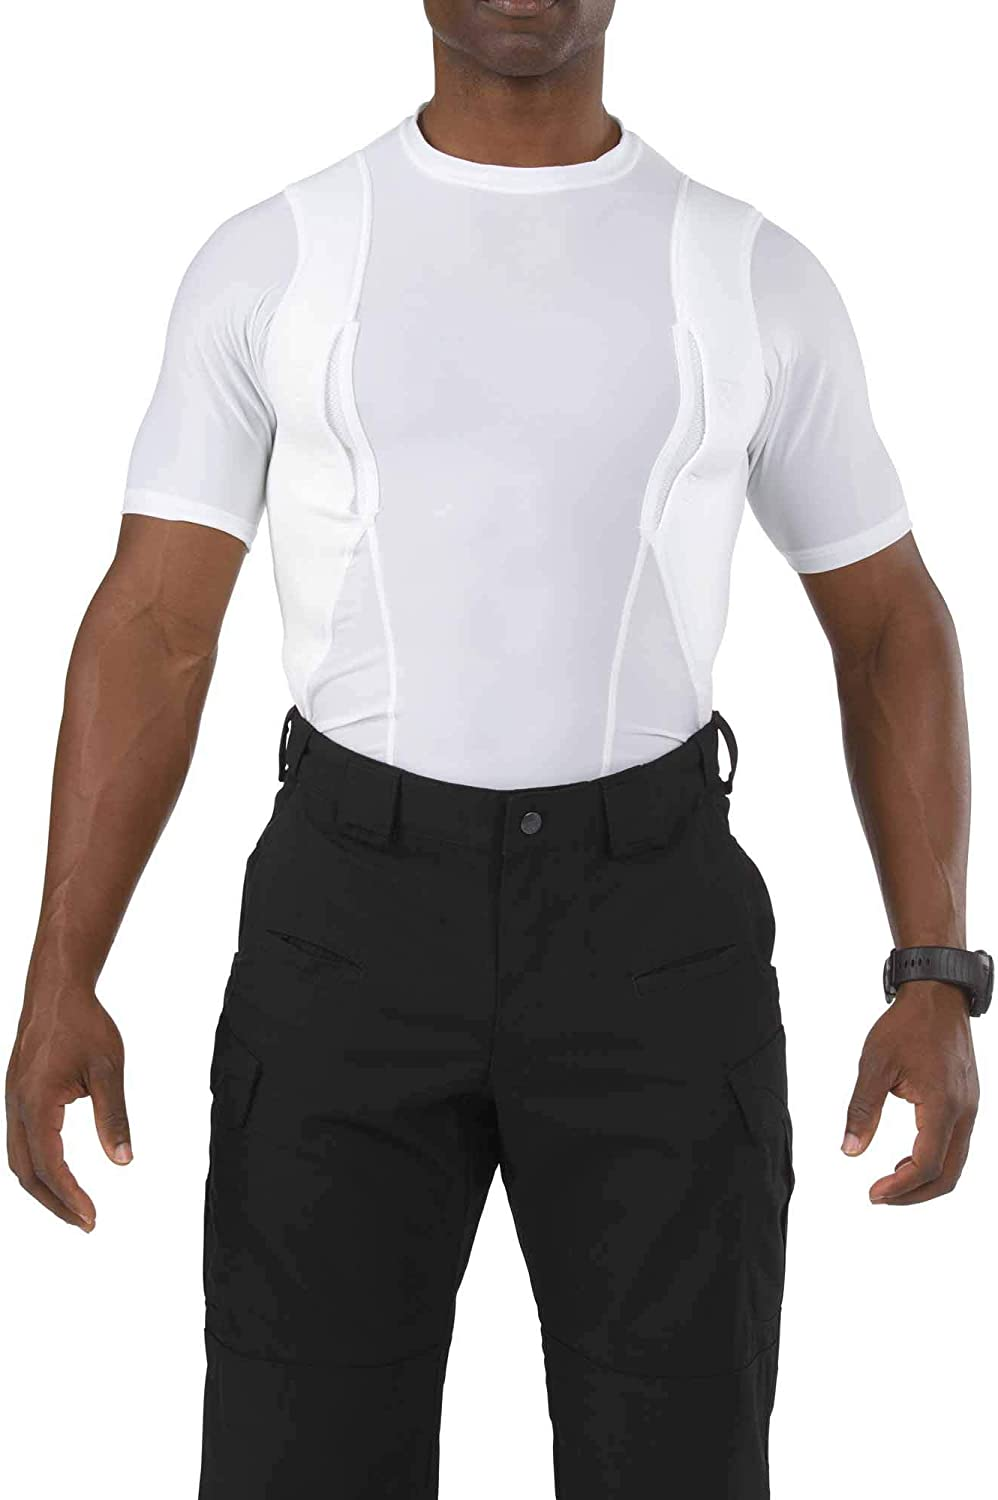 Polyester//Spandex Blend Strengthened Seams 5.11 Tactical Mens Holster Shirt Style 40011